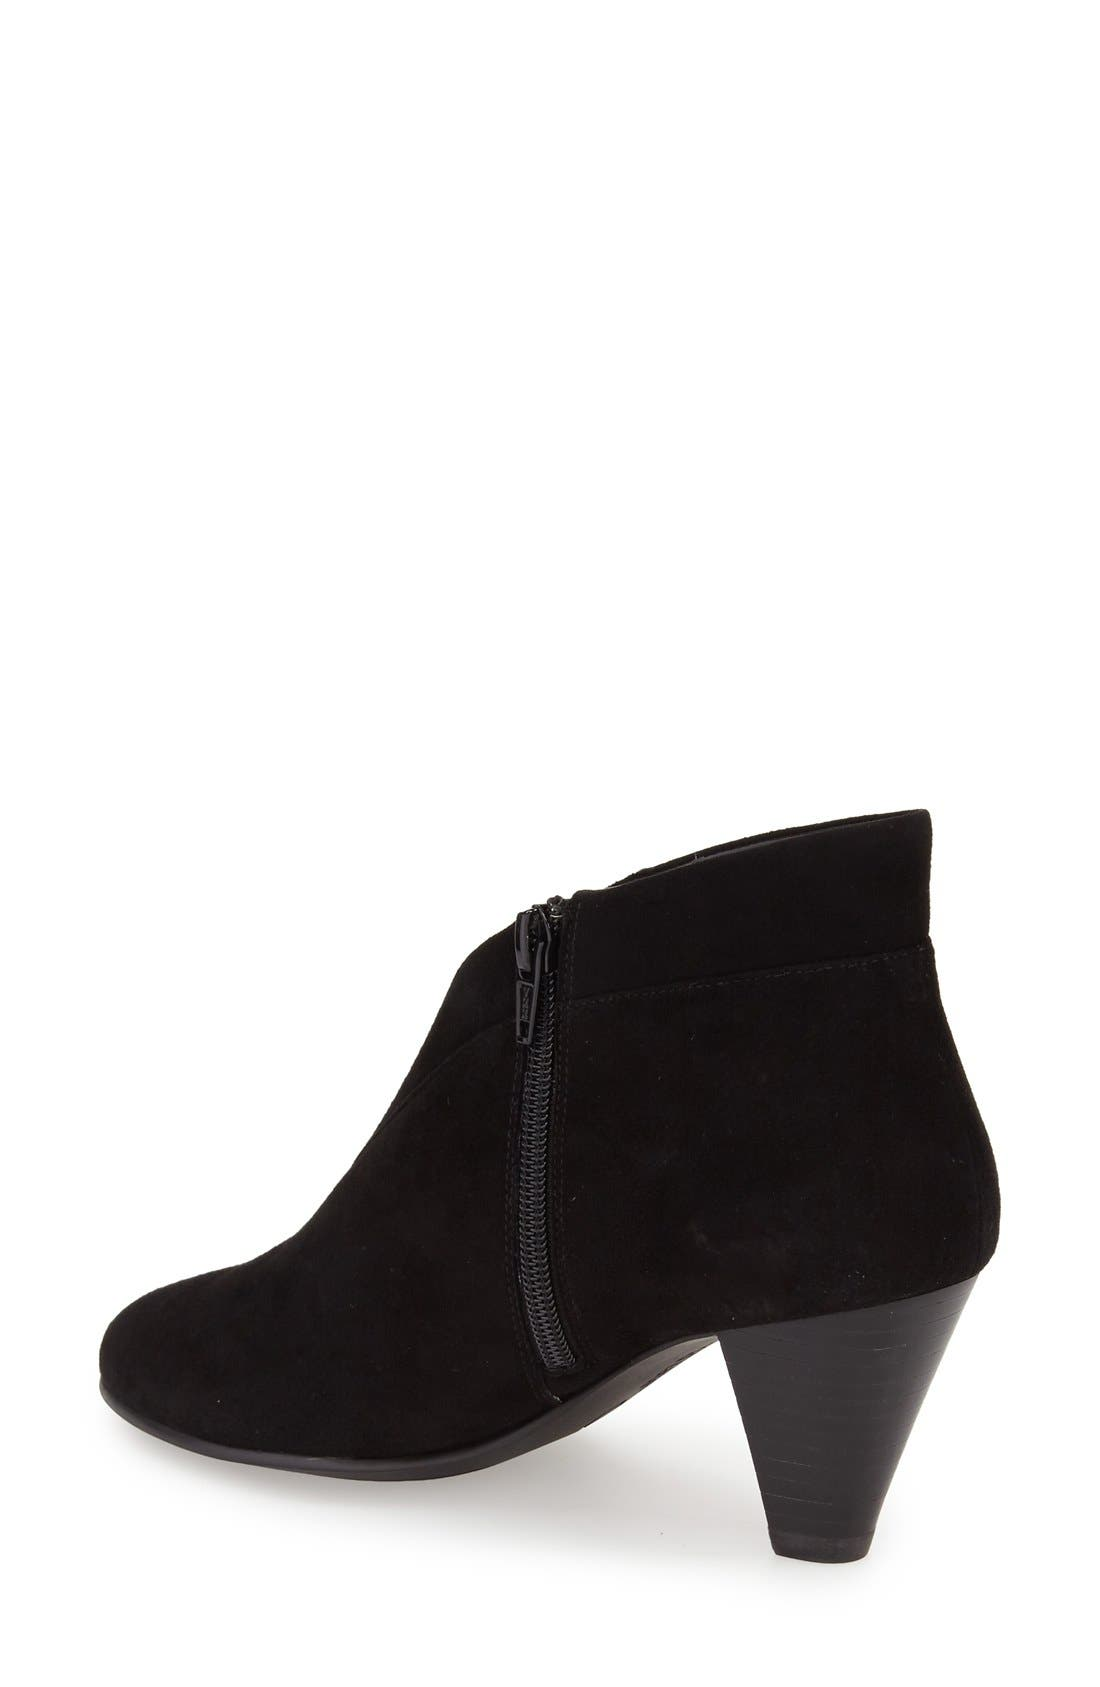 'Natalie' V-Cut Zip Bootie,                             Alternate thumbnail 3, color,                             BLACK SUEDE